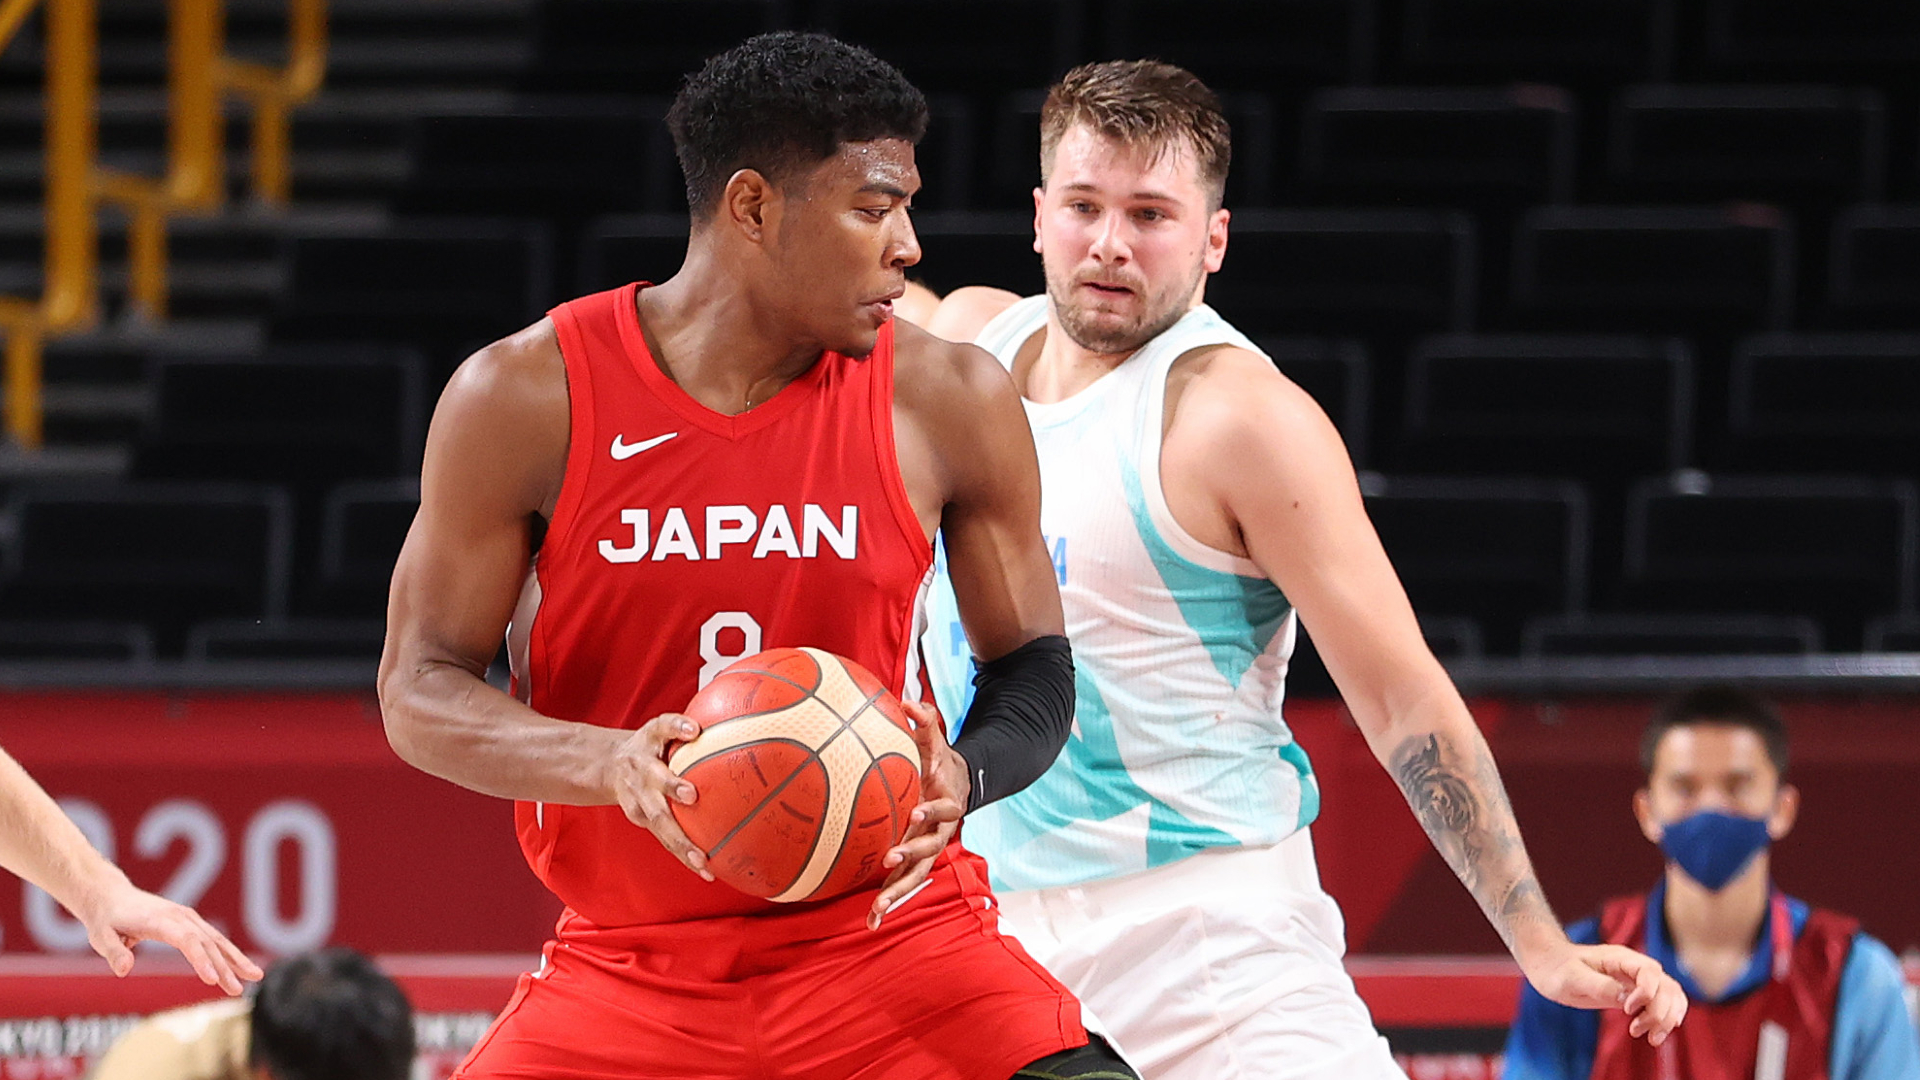 Olympic Men's Basketball Recap: Doncic, Slovenia join Spain in quarterfinals